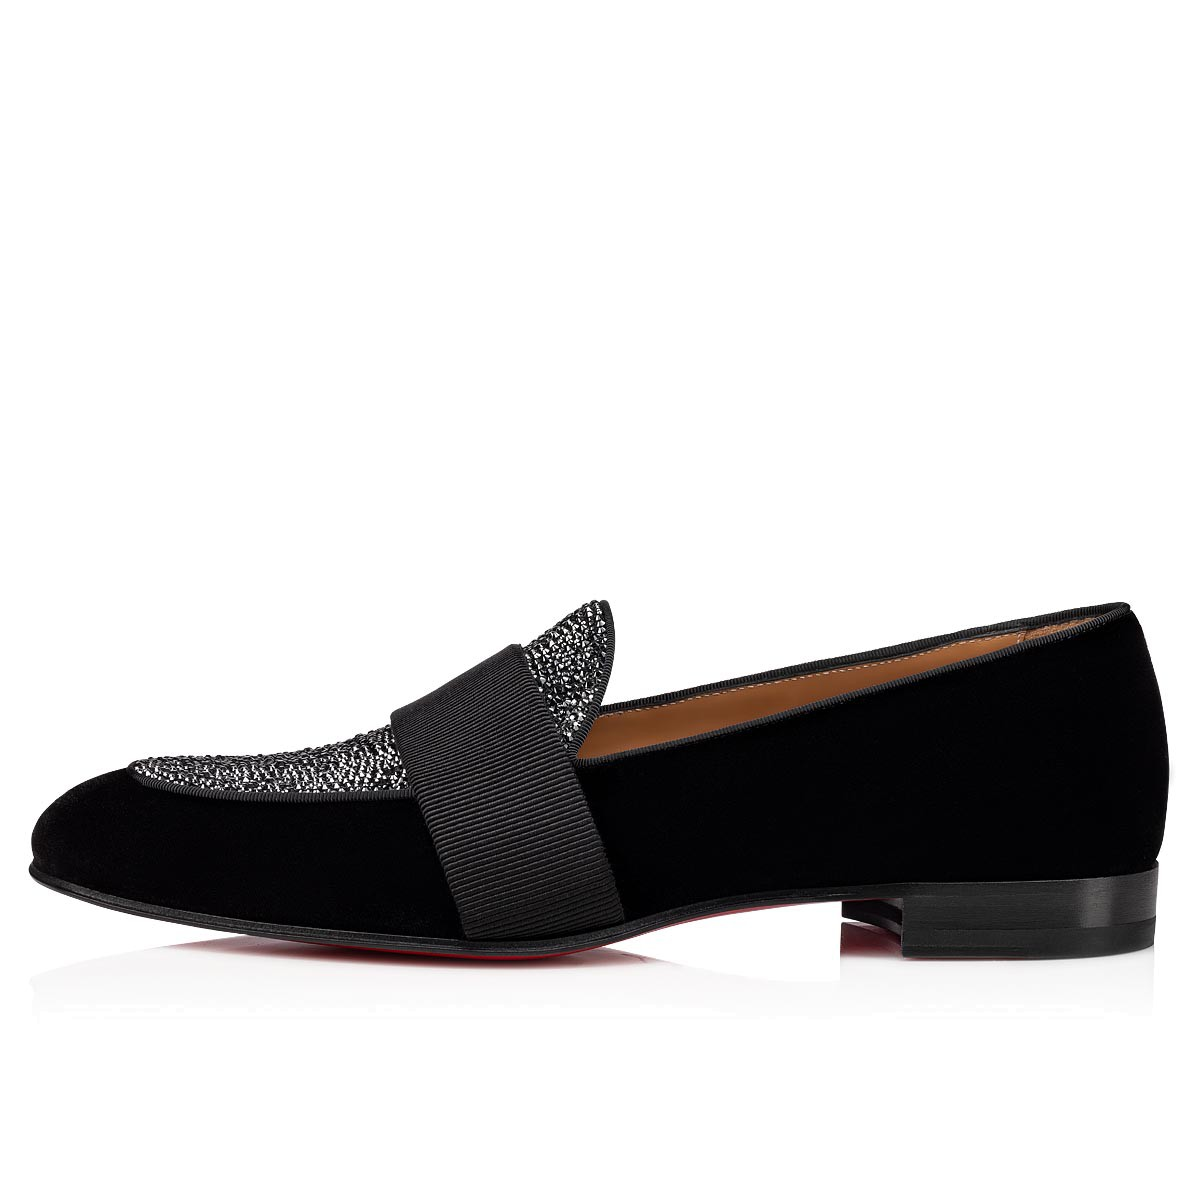 Shoes - Night On The Nile Flat - Christian Louboutin